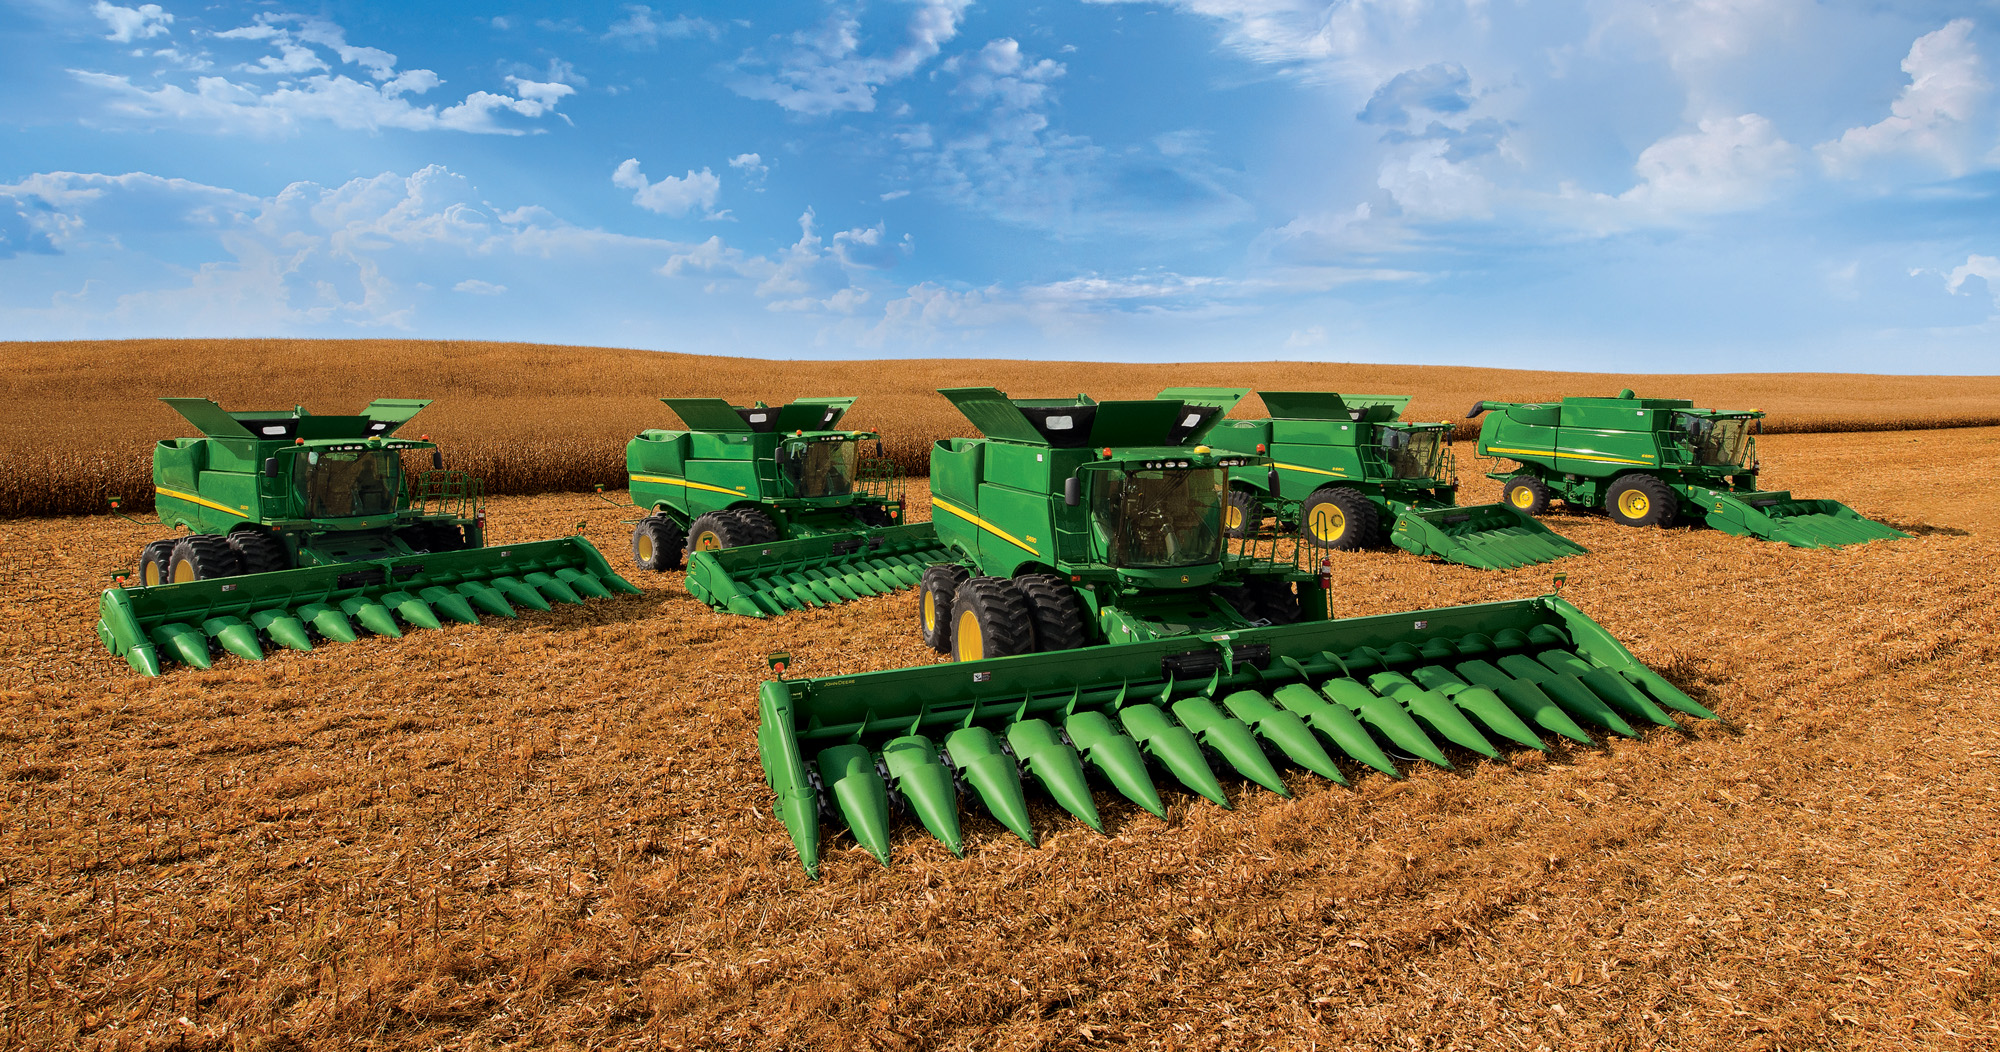 2012 John Deere S690 Combine http://origin-www.deere.com/wps/dcom/en_US/corporate/our_company/news_and_media/press_releases/2011/agriculture/2011aug25_sseries.page